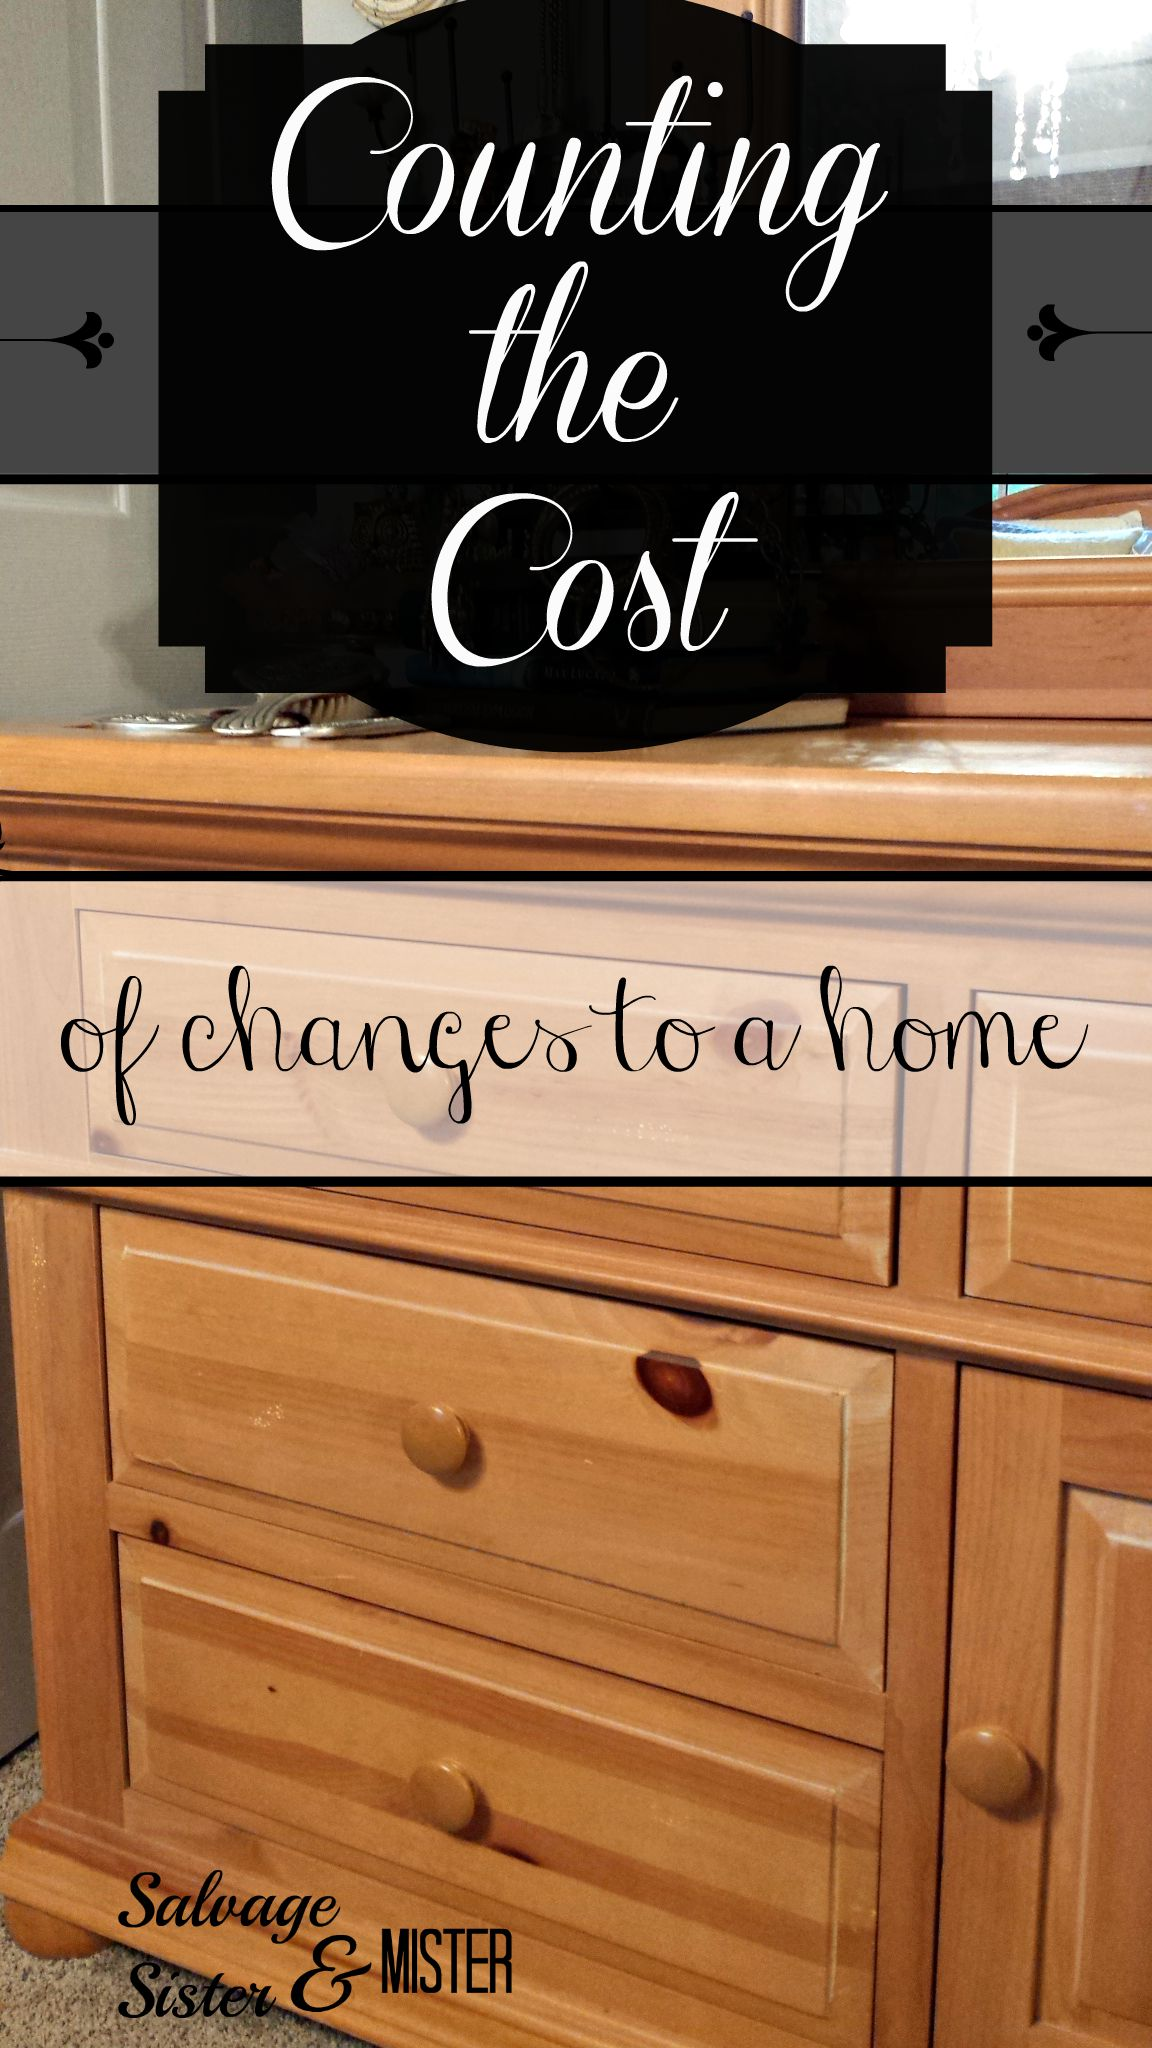 Do you change 1990 furniture  How to make these decisions  Counting the  cost. Counting the Costs   Salvage Sister and Mister